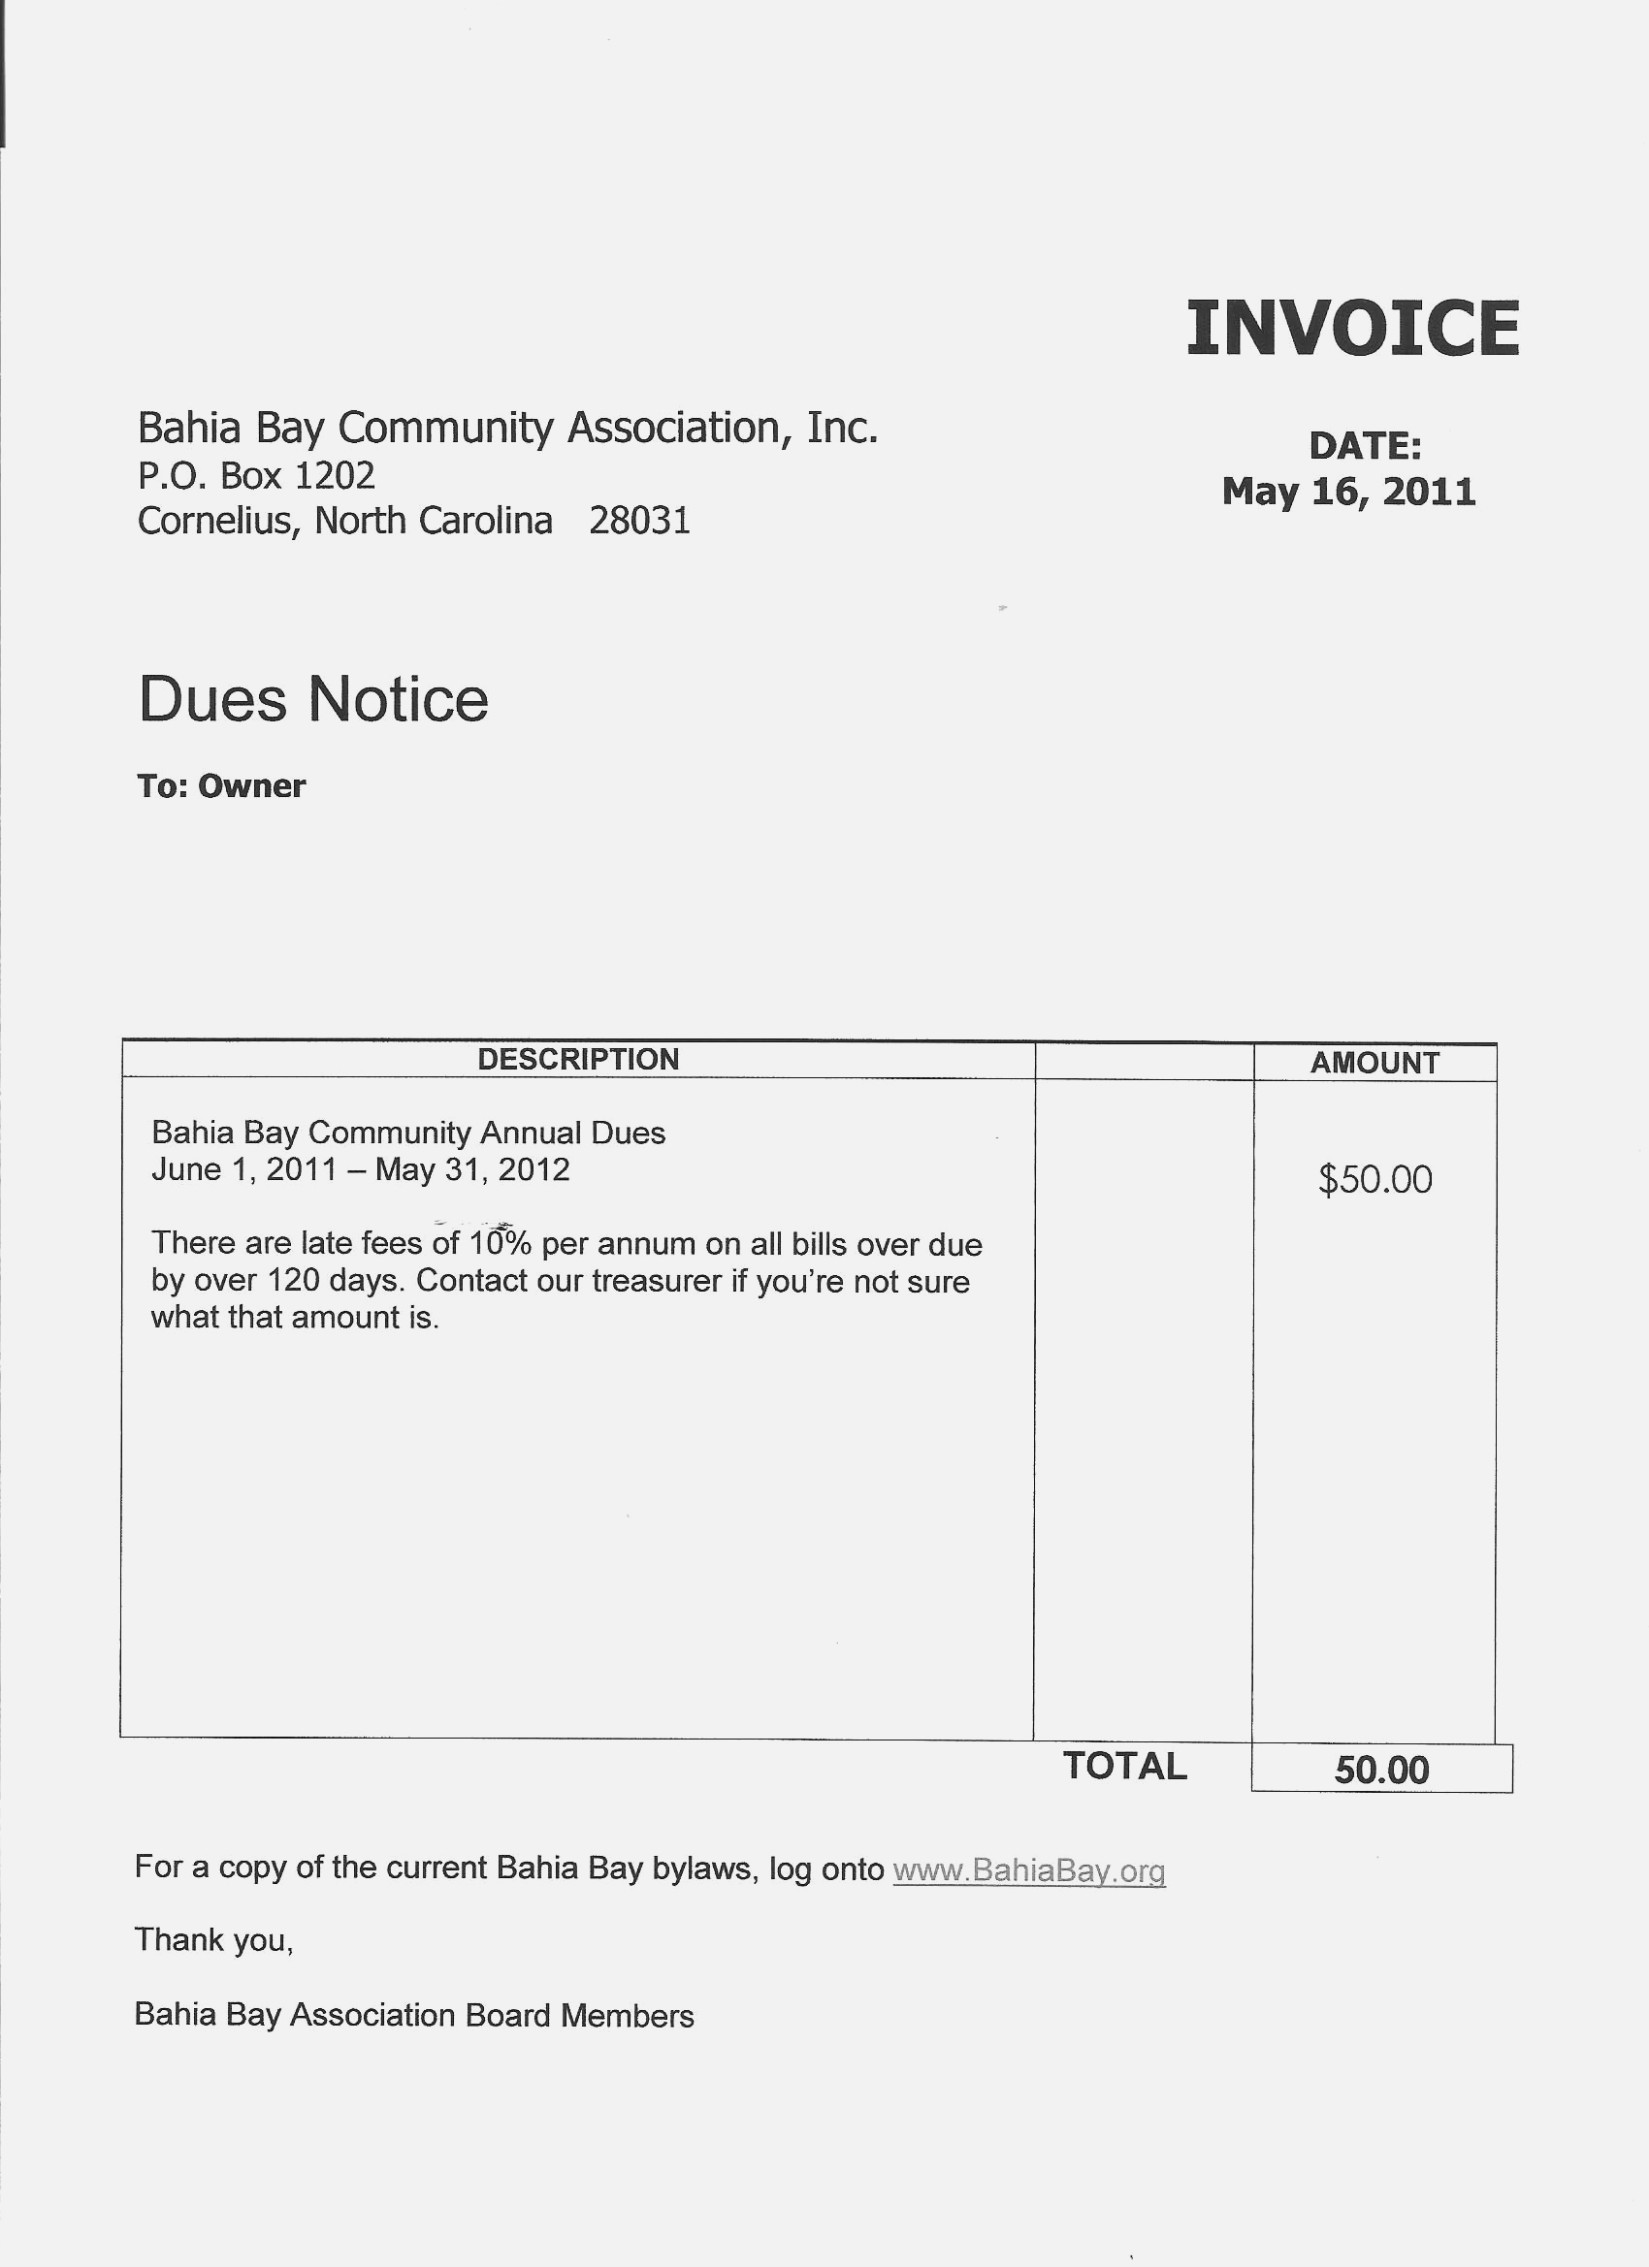 homeowners association dues invoice  The Seven Common   Realty Executives Mi : Invoice and ..